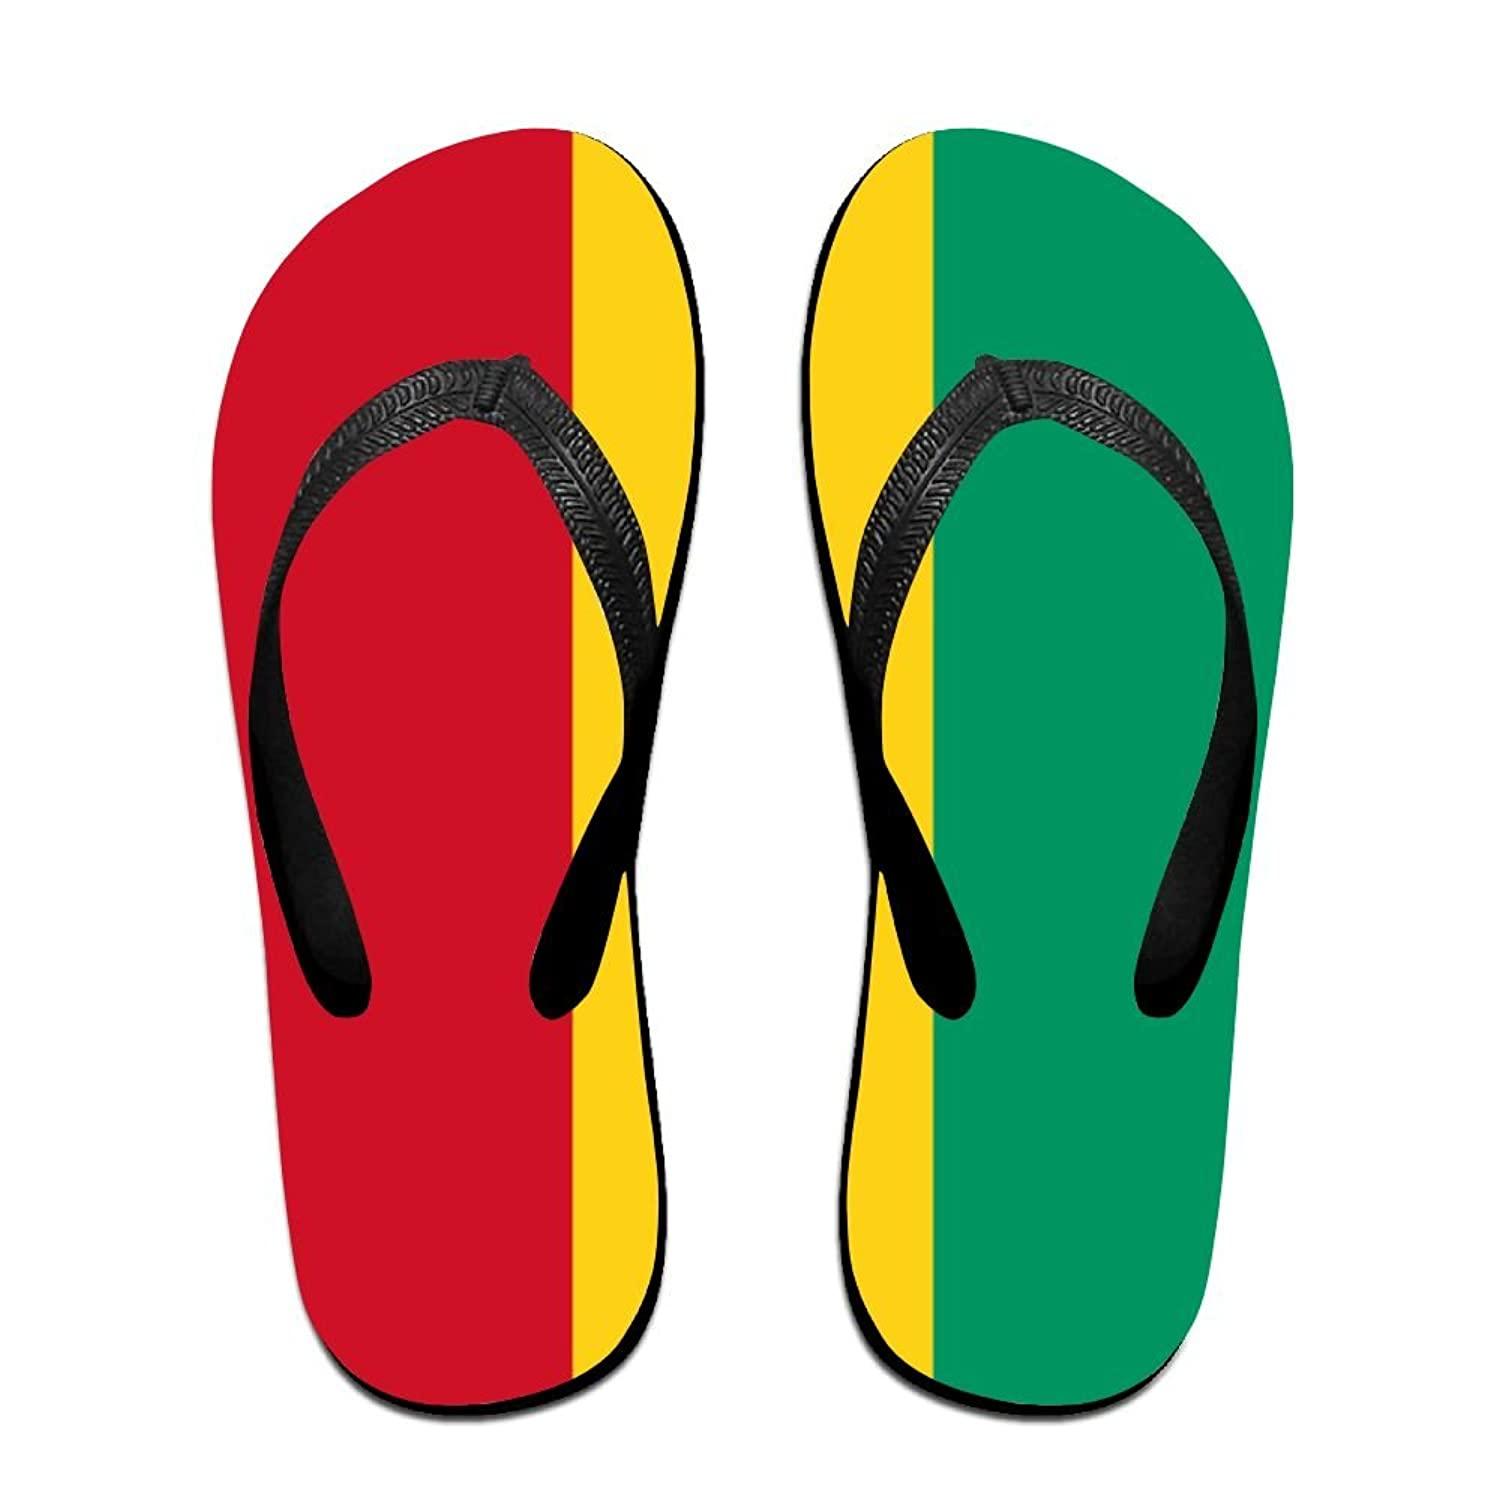 Flag Of Guinea Cozy Flip Flops For Children Adults Men And Women Beach Sandals Pool Party Slippers